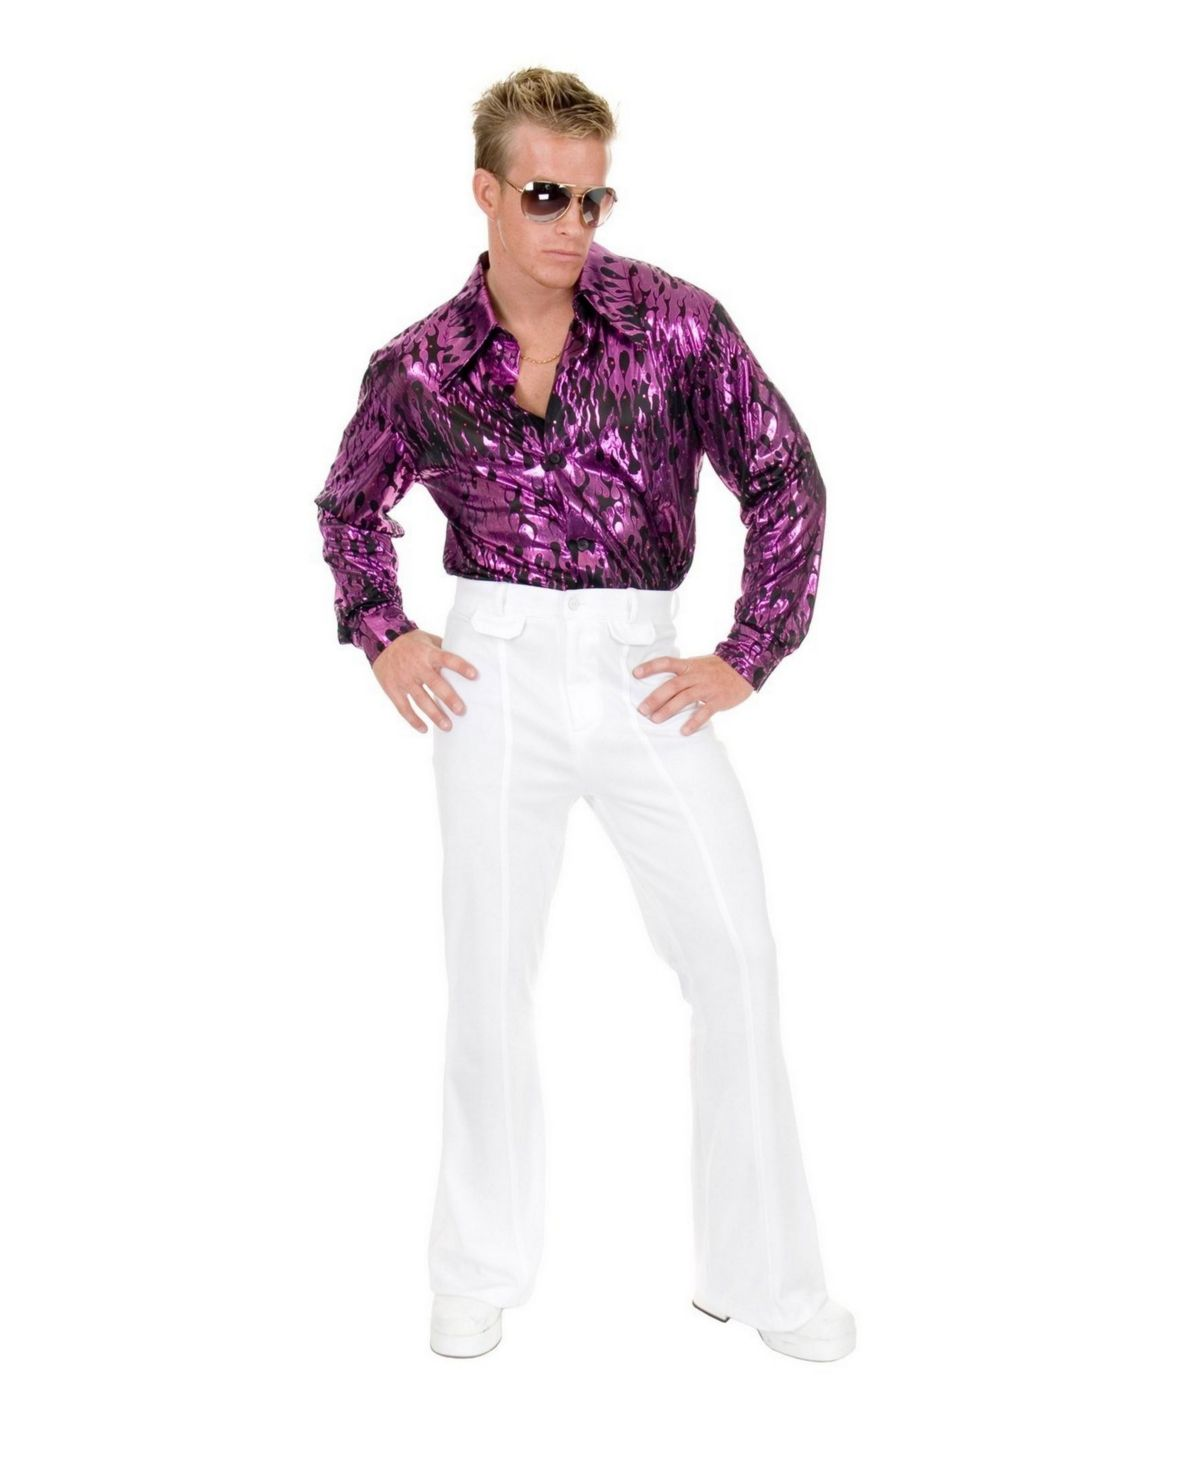 Bell Bottom Pants Purple Adult Men/'s Costume 60/'S Style Halloween Dress Up